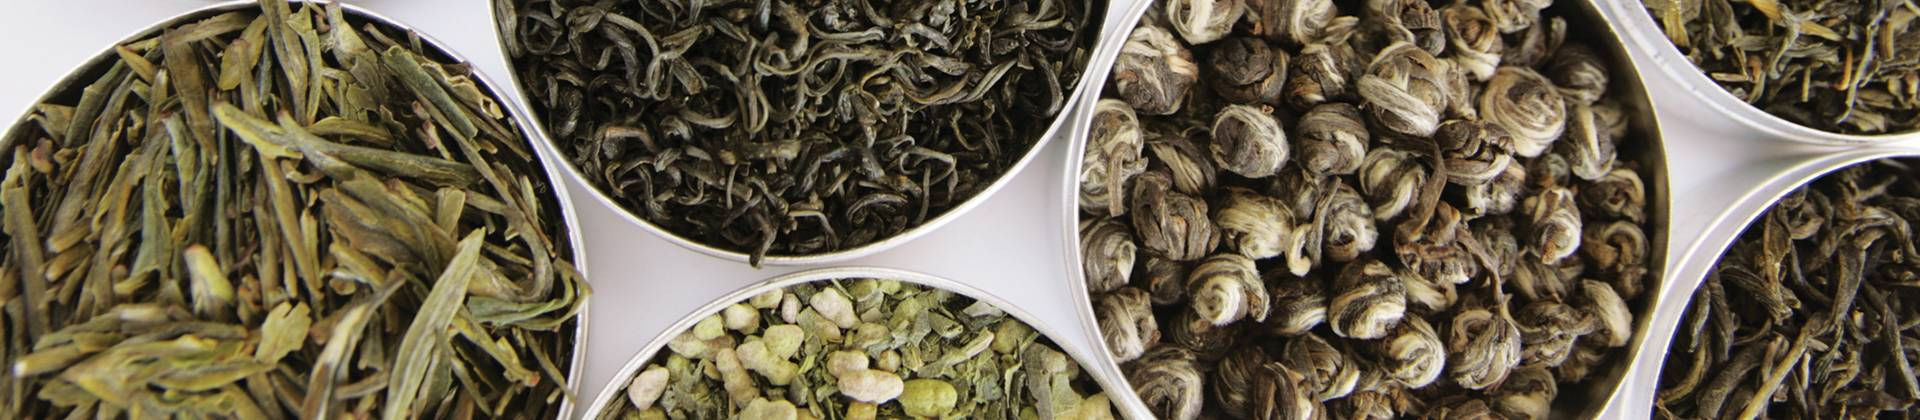 Our teas are produced using only the finest handpicked tea leaves